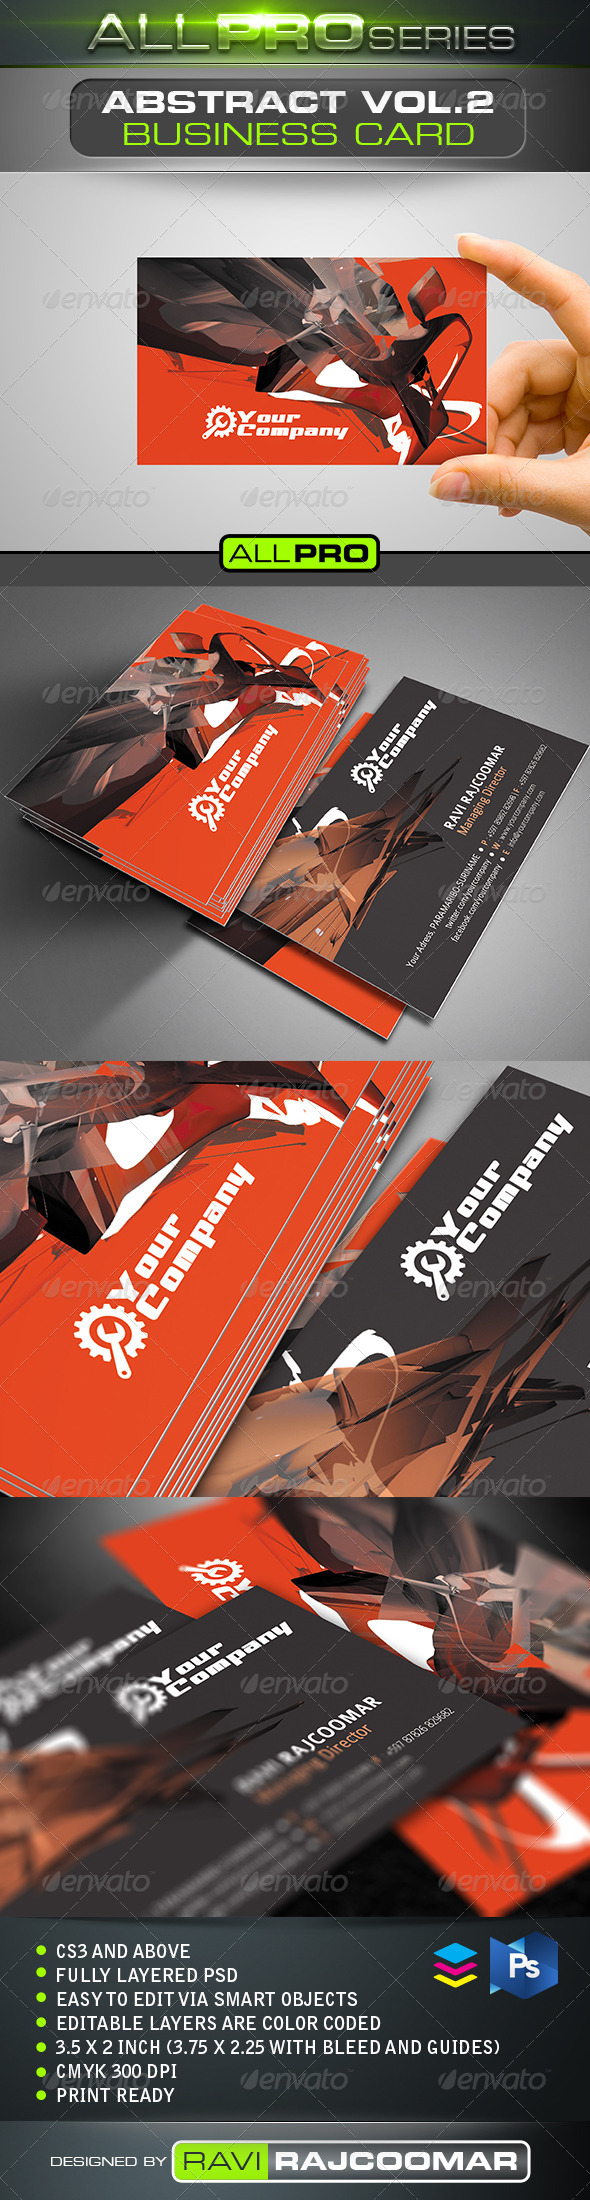 Abstract Business Card Vol.2 - Creative Business Cards